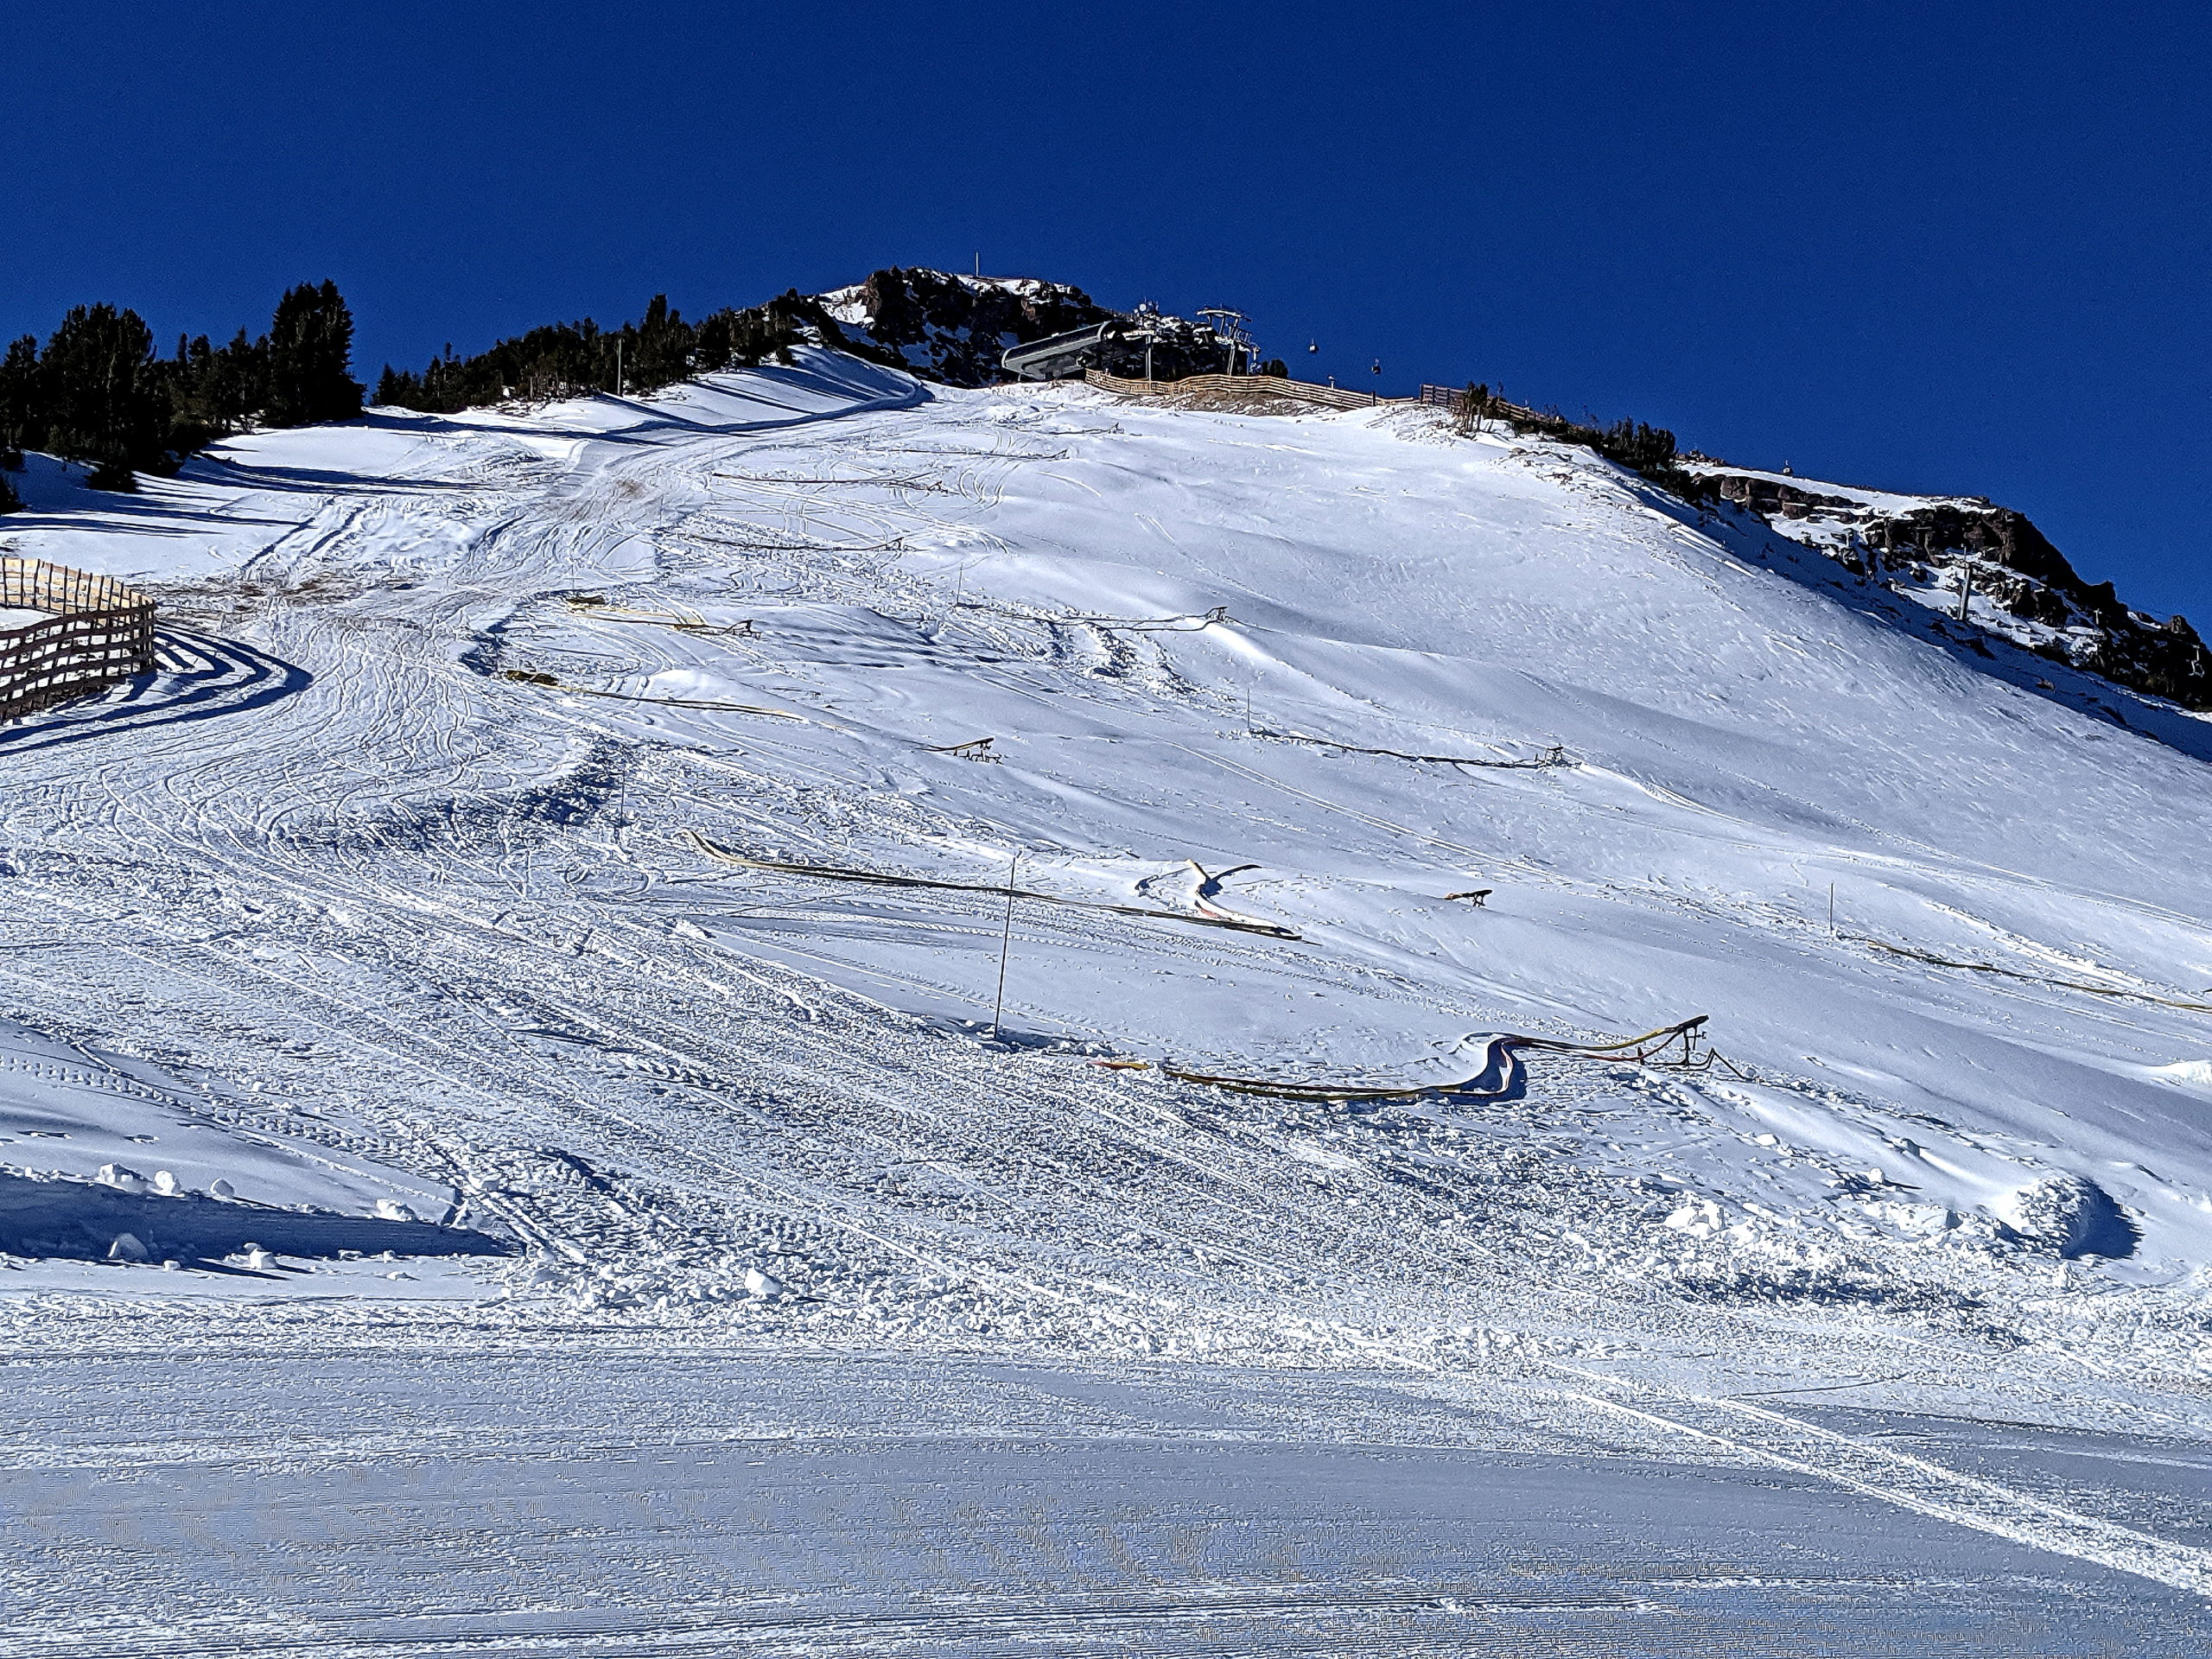 Upper Solitude and the Top of Chair 5 - 11-2020